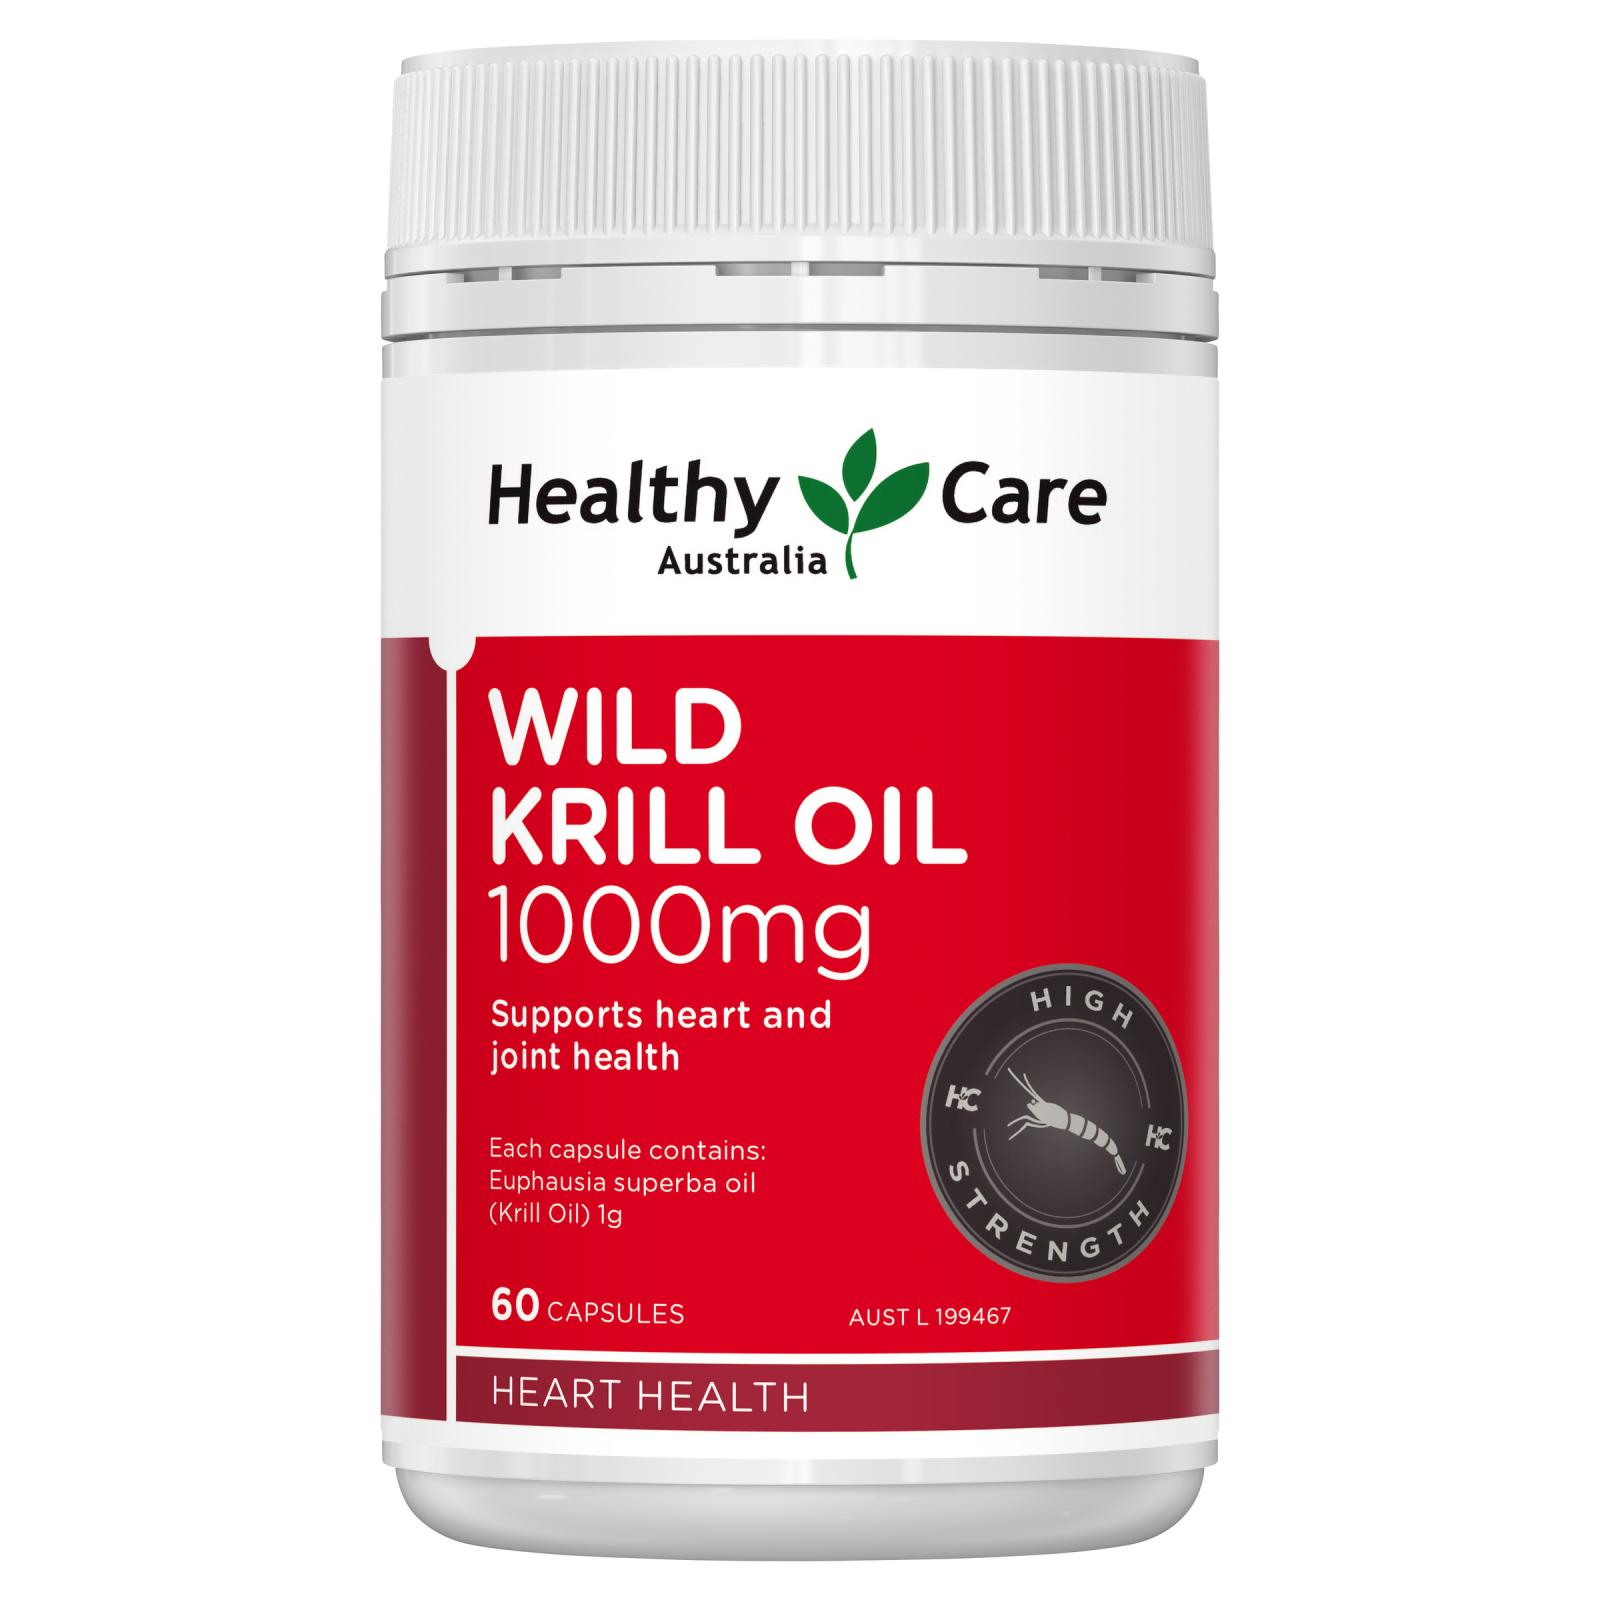 Healthy Care Wild Krill Oil 1000mg Capsules 60